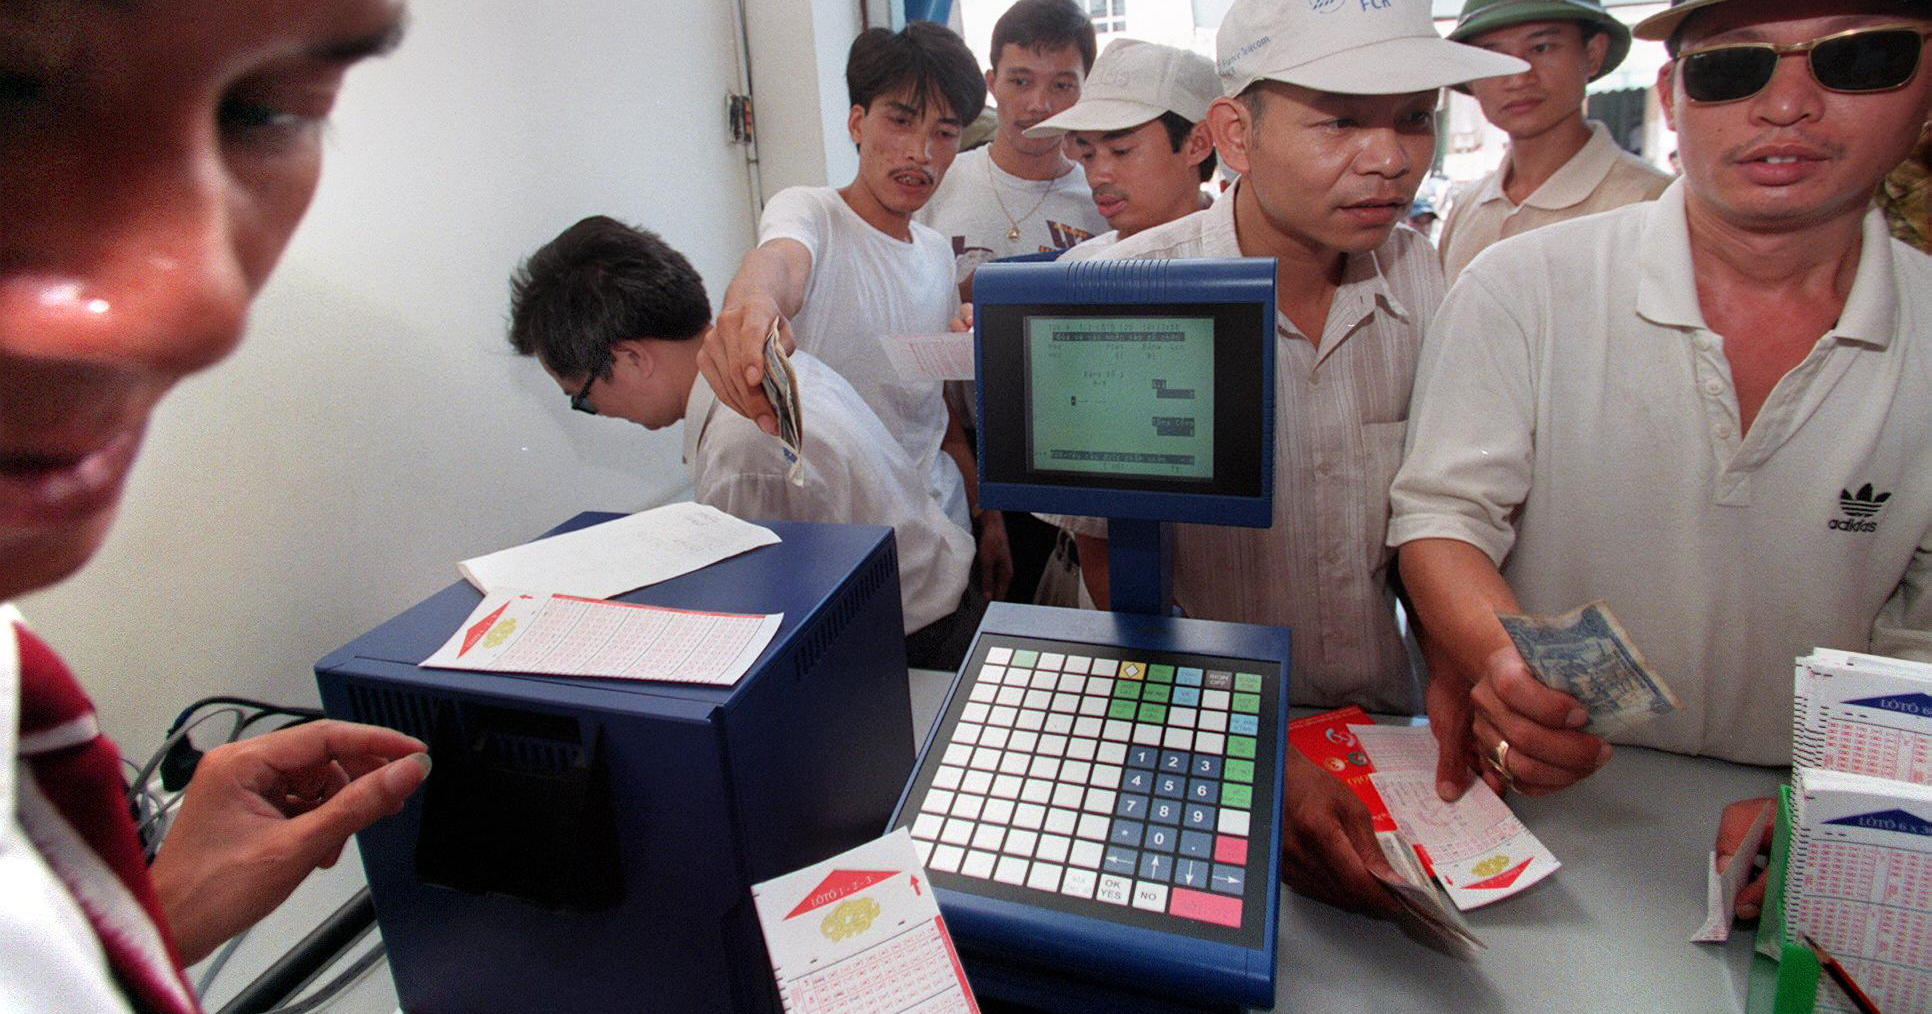 Men buy lottery tickets Photo: Hoang Dinh Nam / AFP